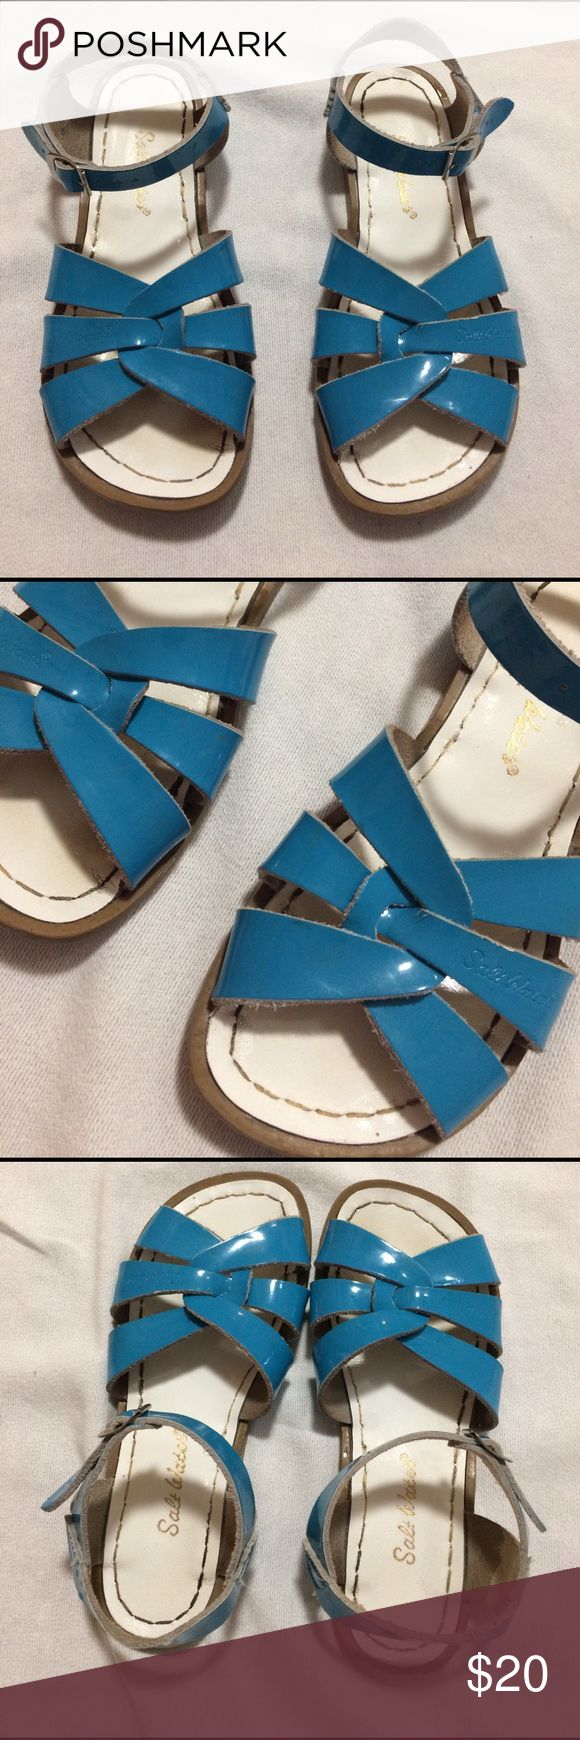 saltwater girls sandals blue saltwater sandals size 3 very well taken care of no